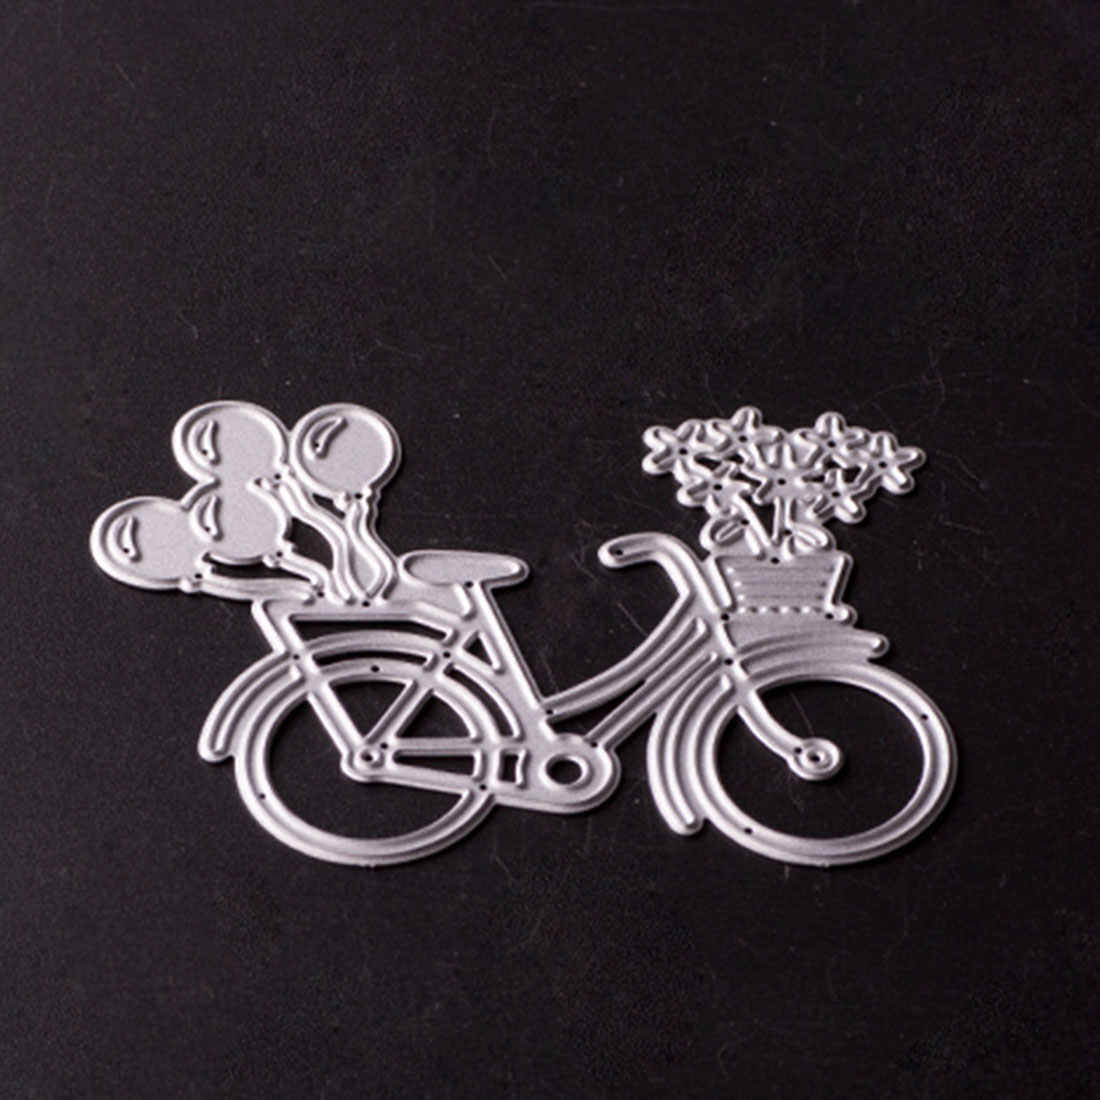 Pop  Bike Bicycle Metal Cutting Dies Stencil For Scrapbooking Paper Card Album Photo Craft Art Embossing Painting Decor